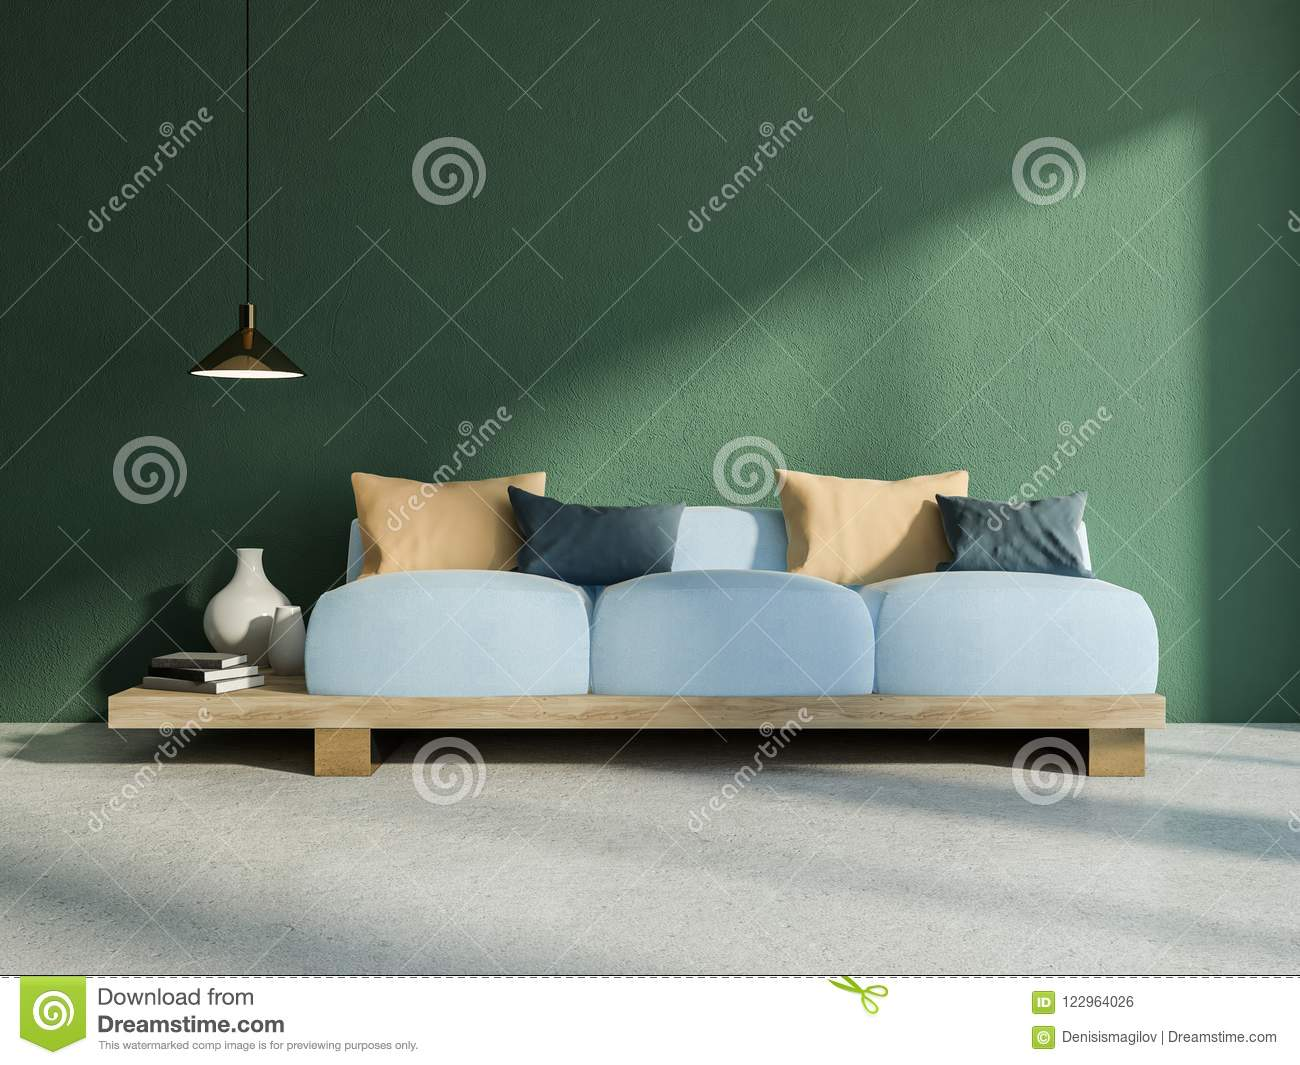 Japanese Style Sofa In Green Living Room Interior Stock ...